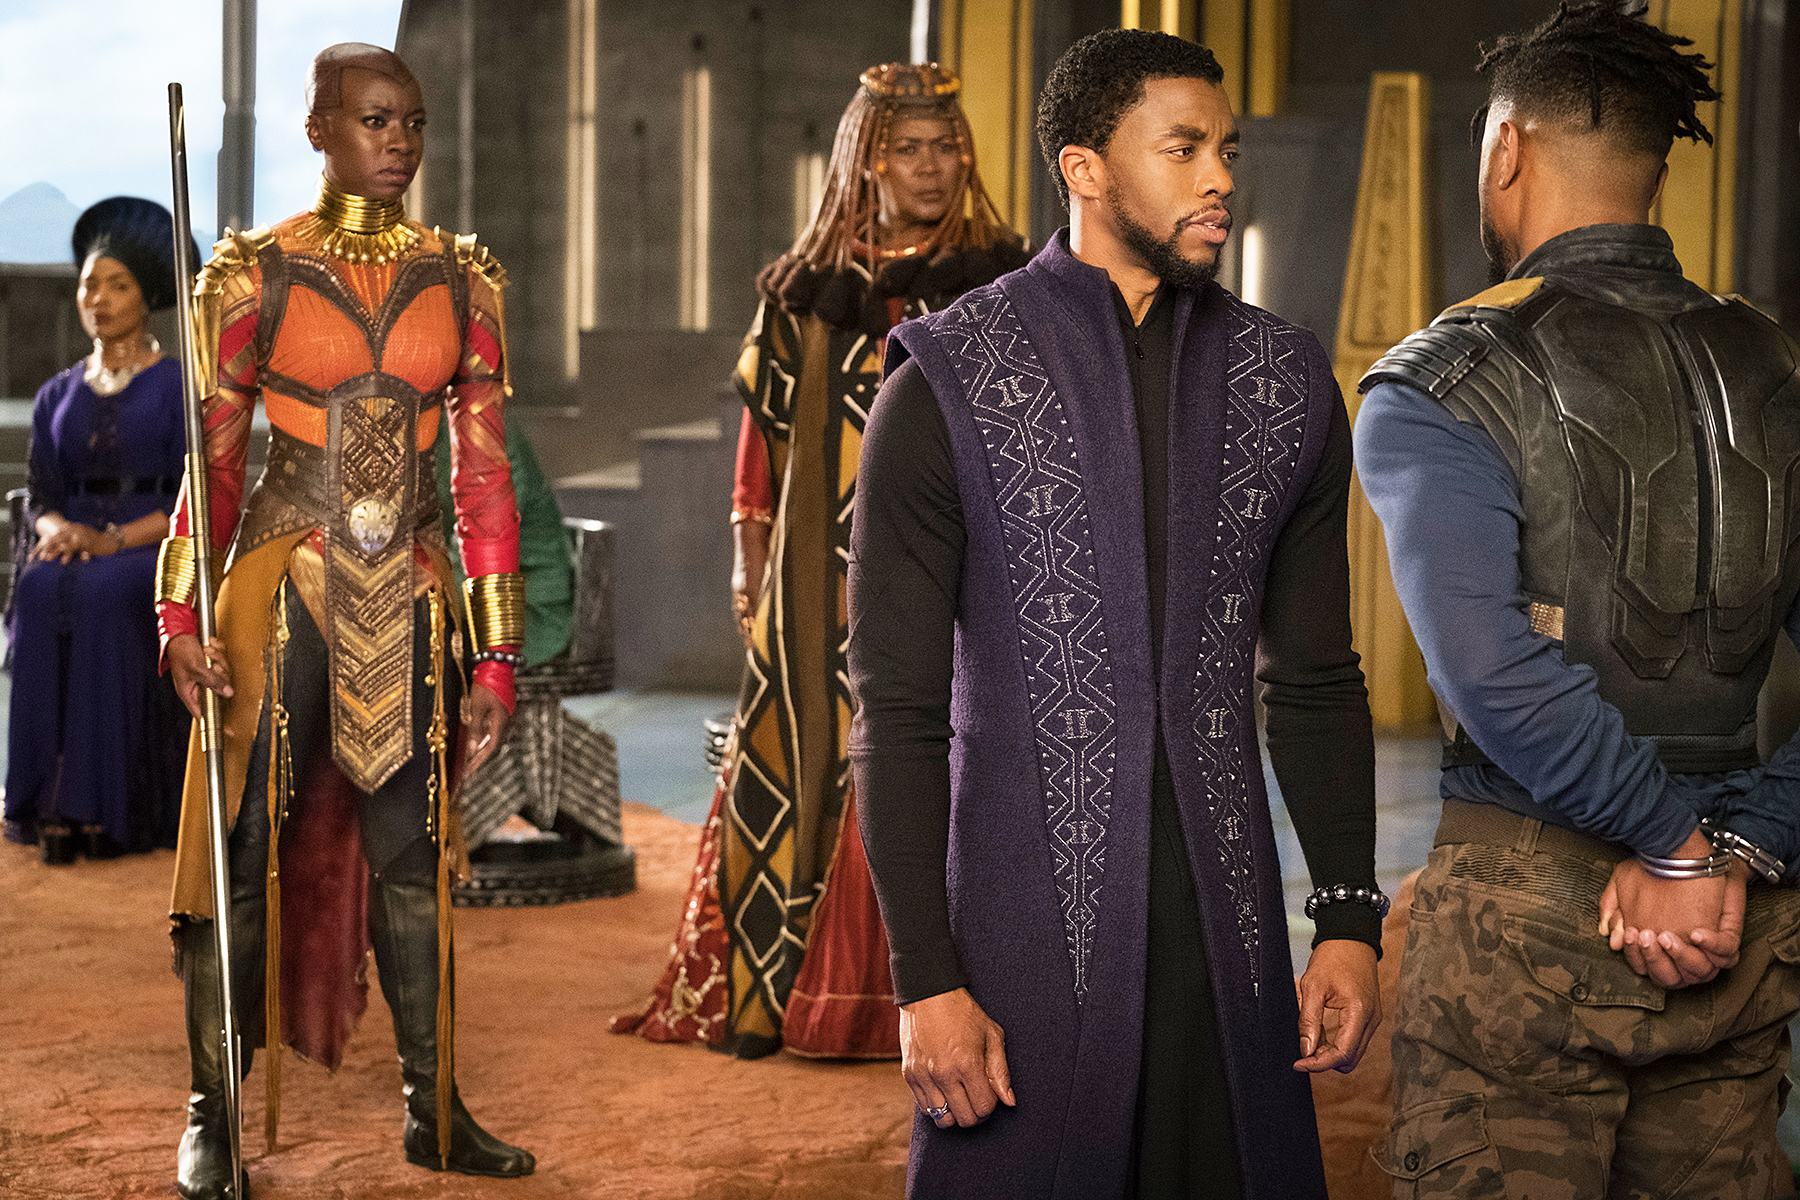 Betting on the colorful costumes of  Black Panther  to prevail over the more traditional  Favourite  garb